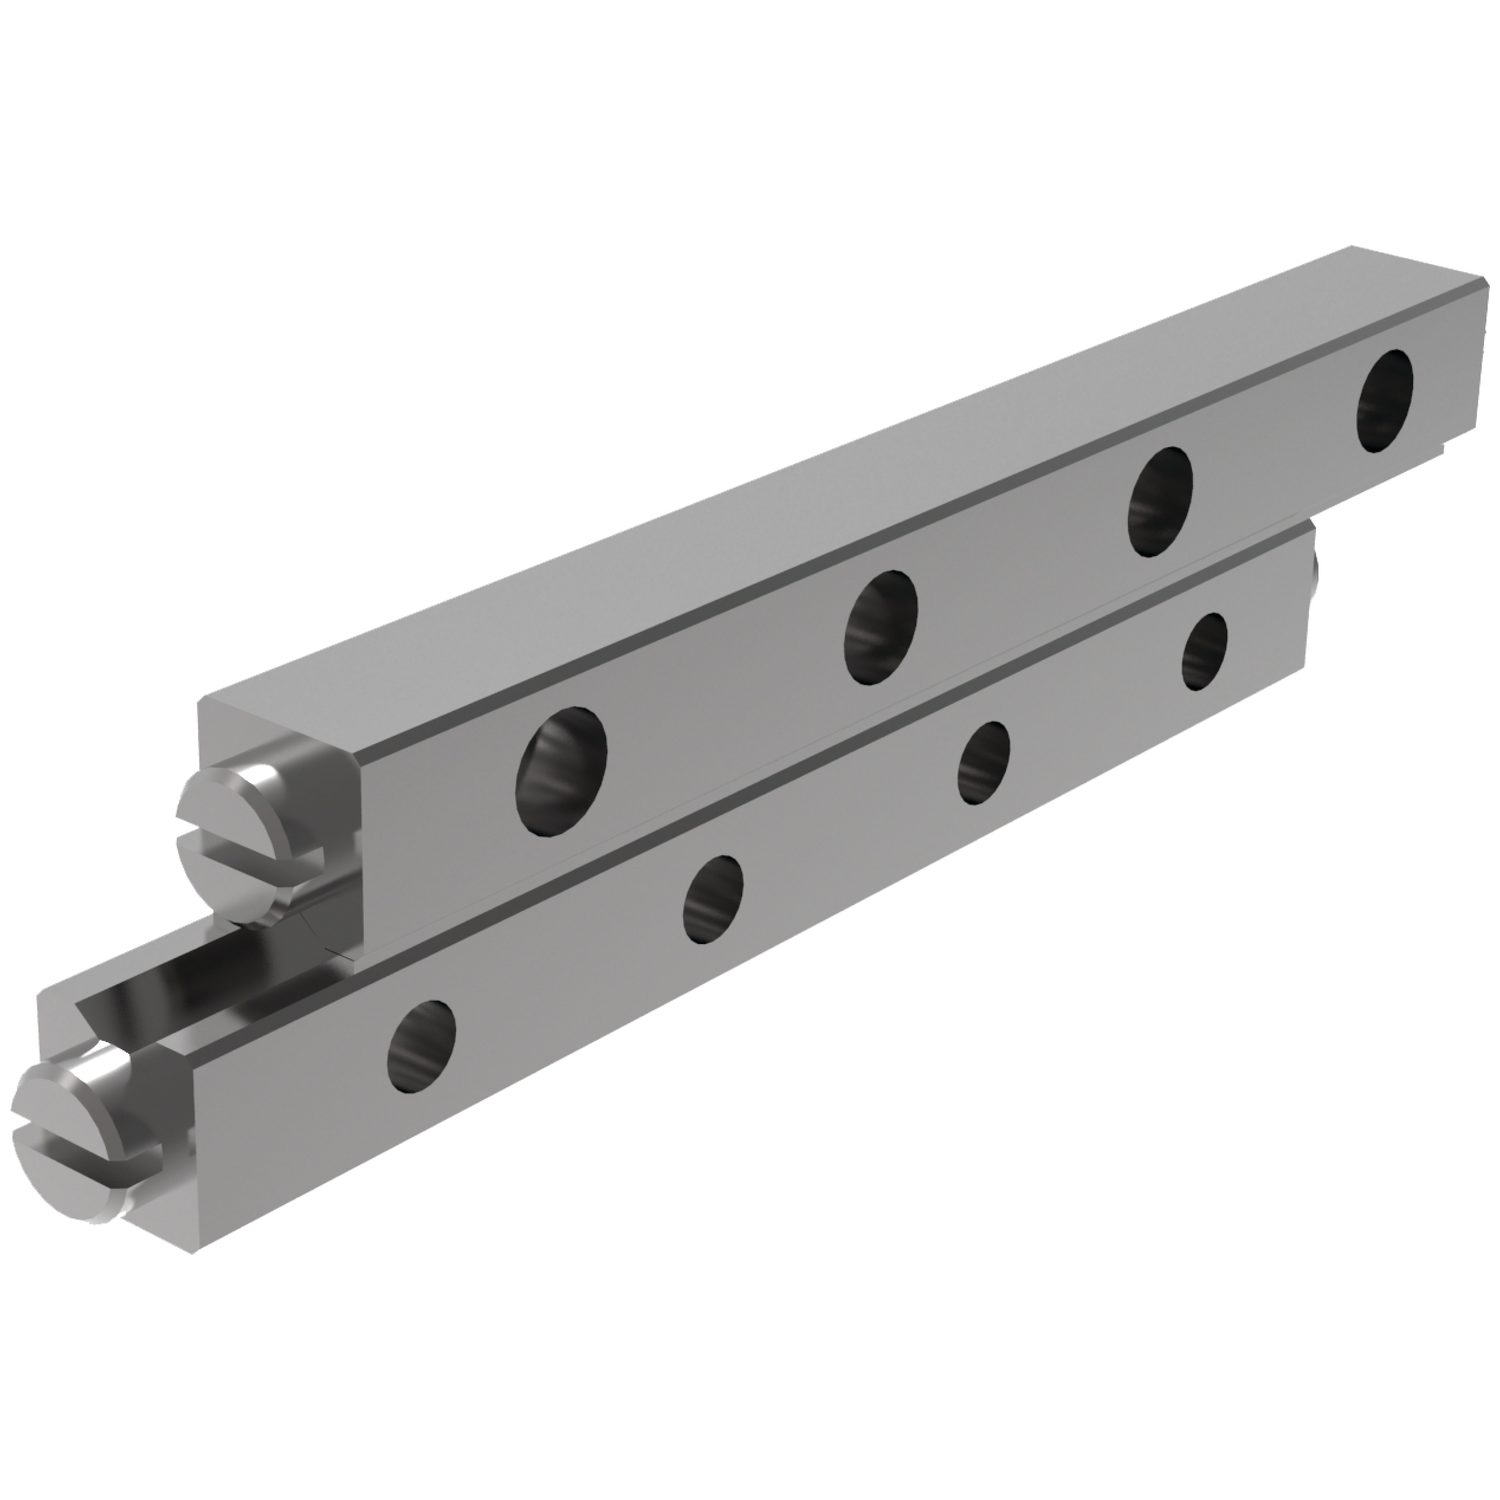 L1000 - Crossed Roller Rail Sets